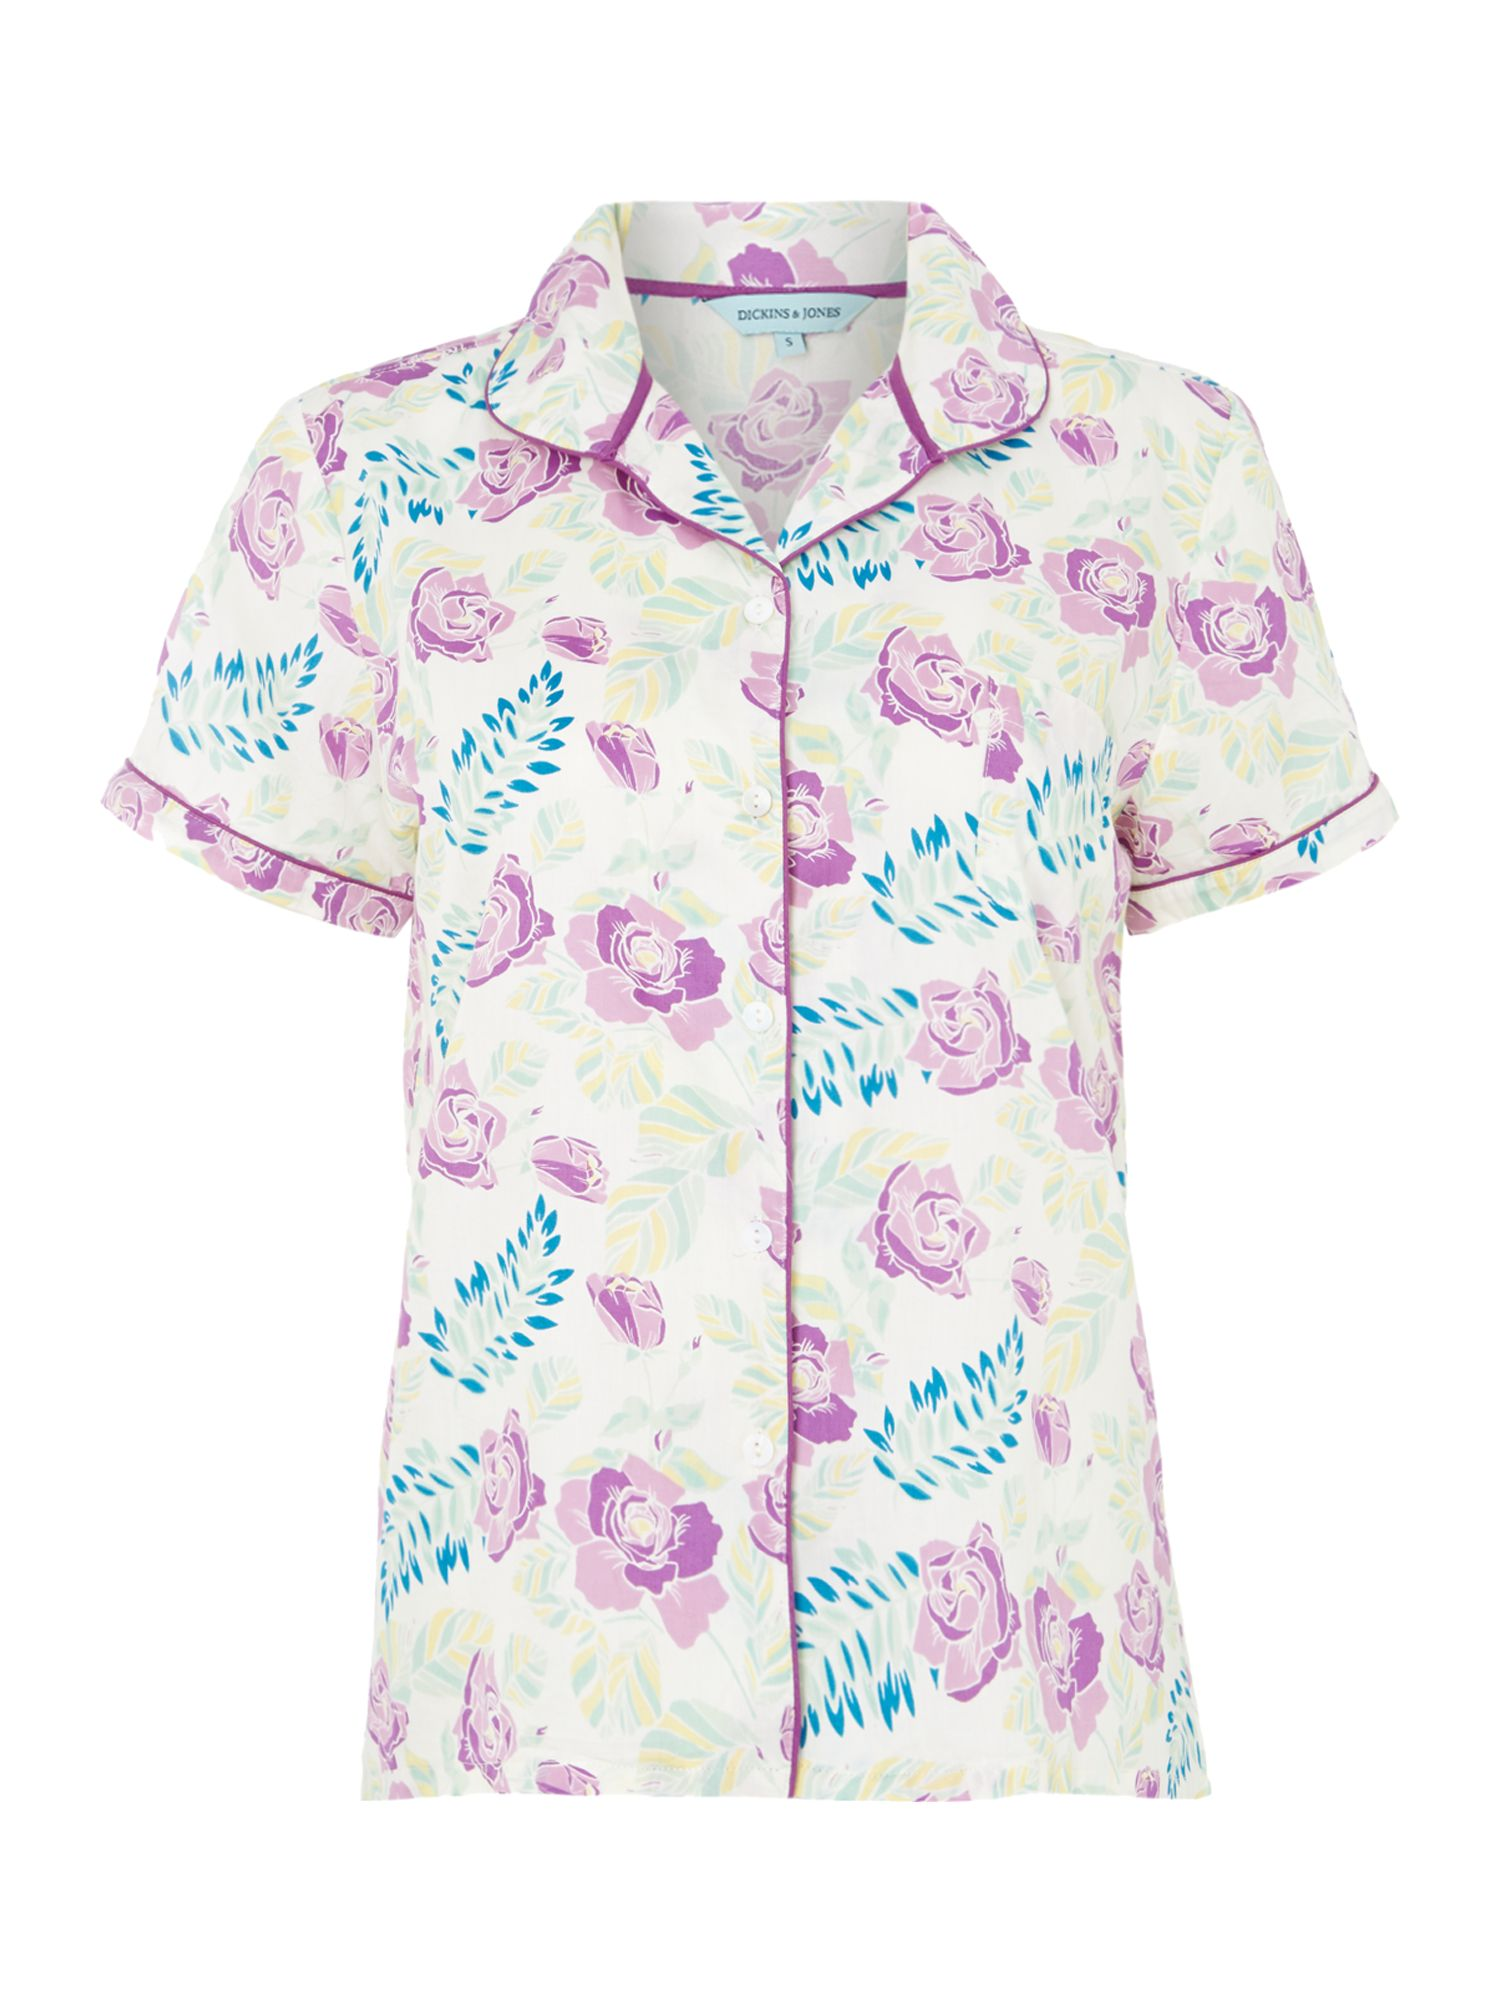 Evenlyn vintage floral short sleeve pj top